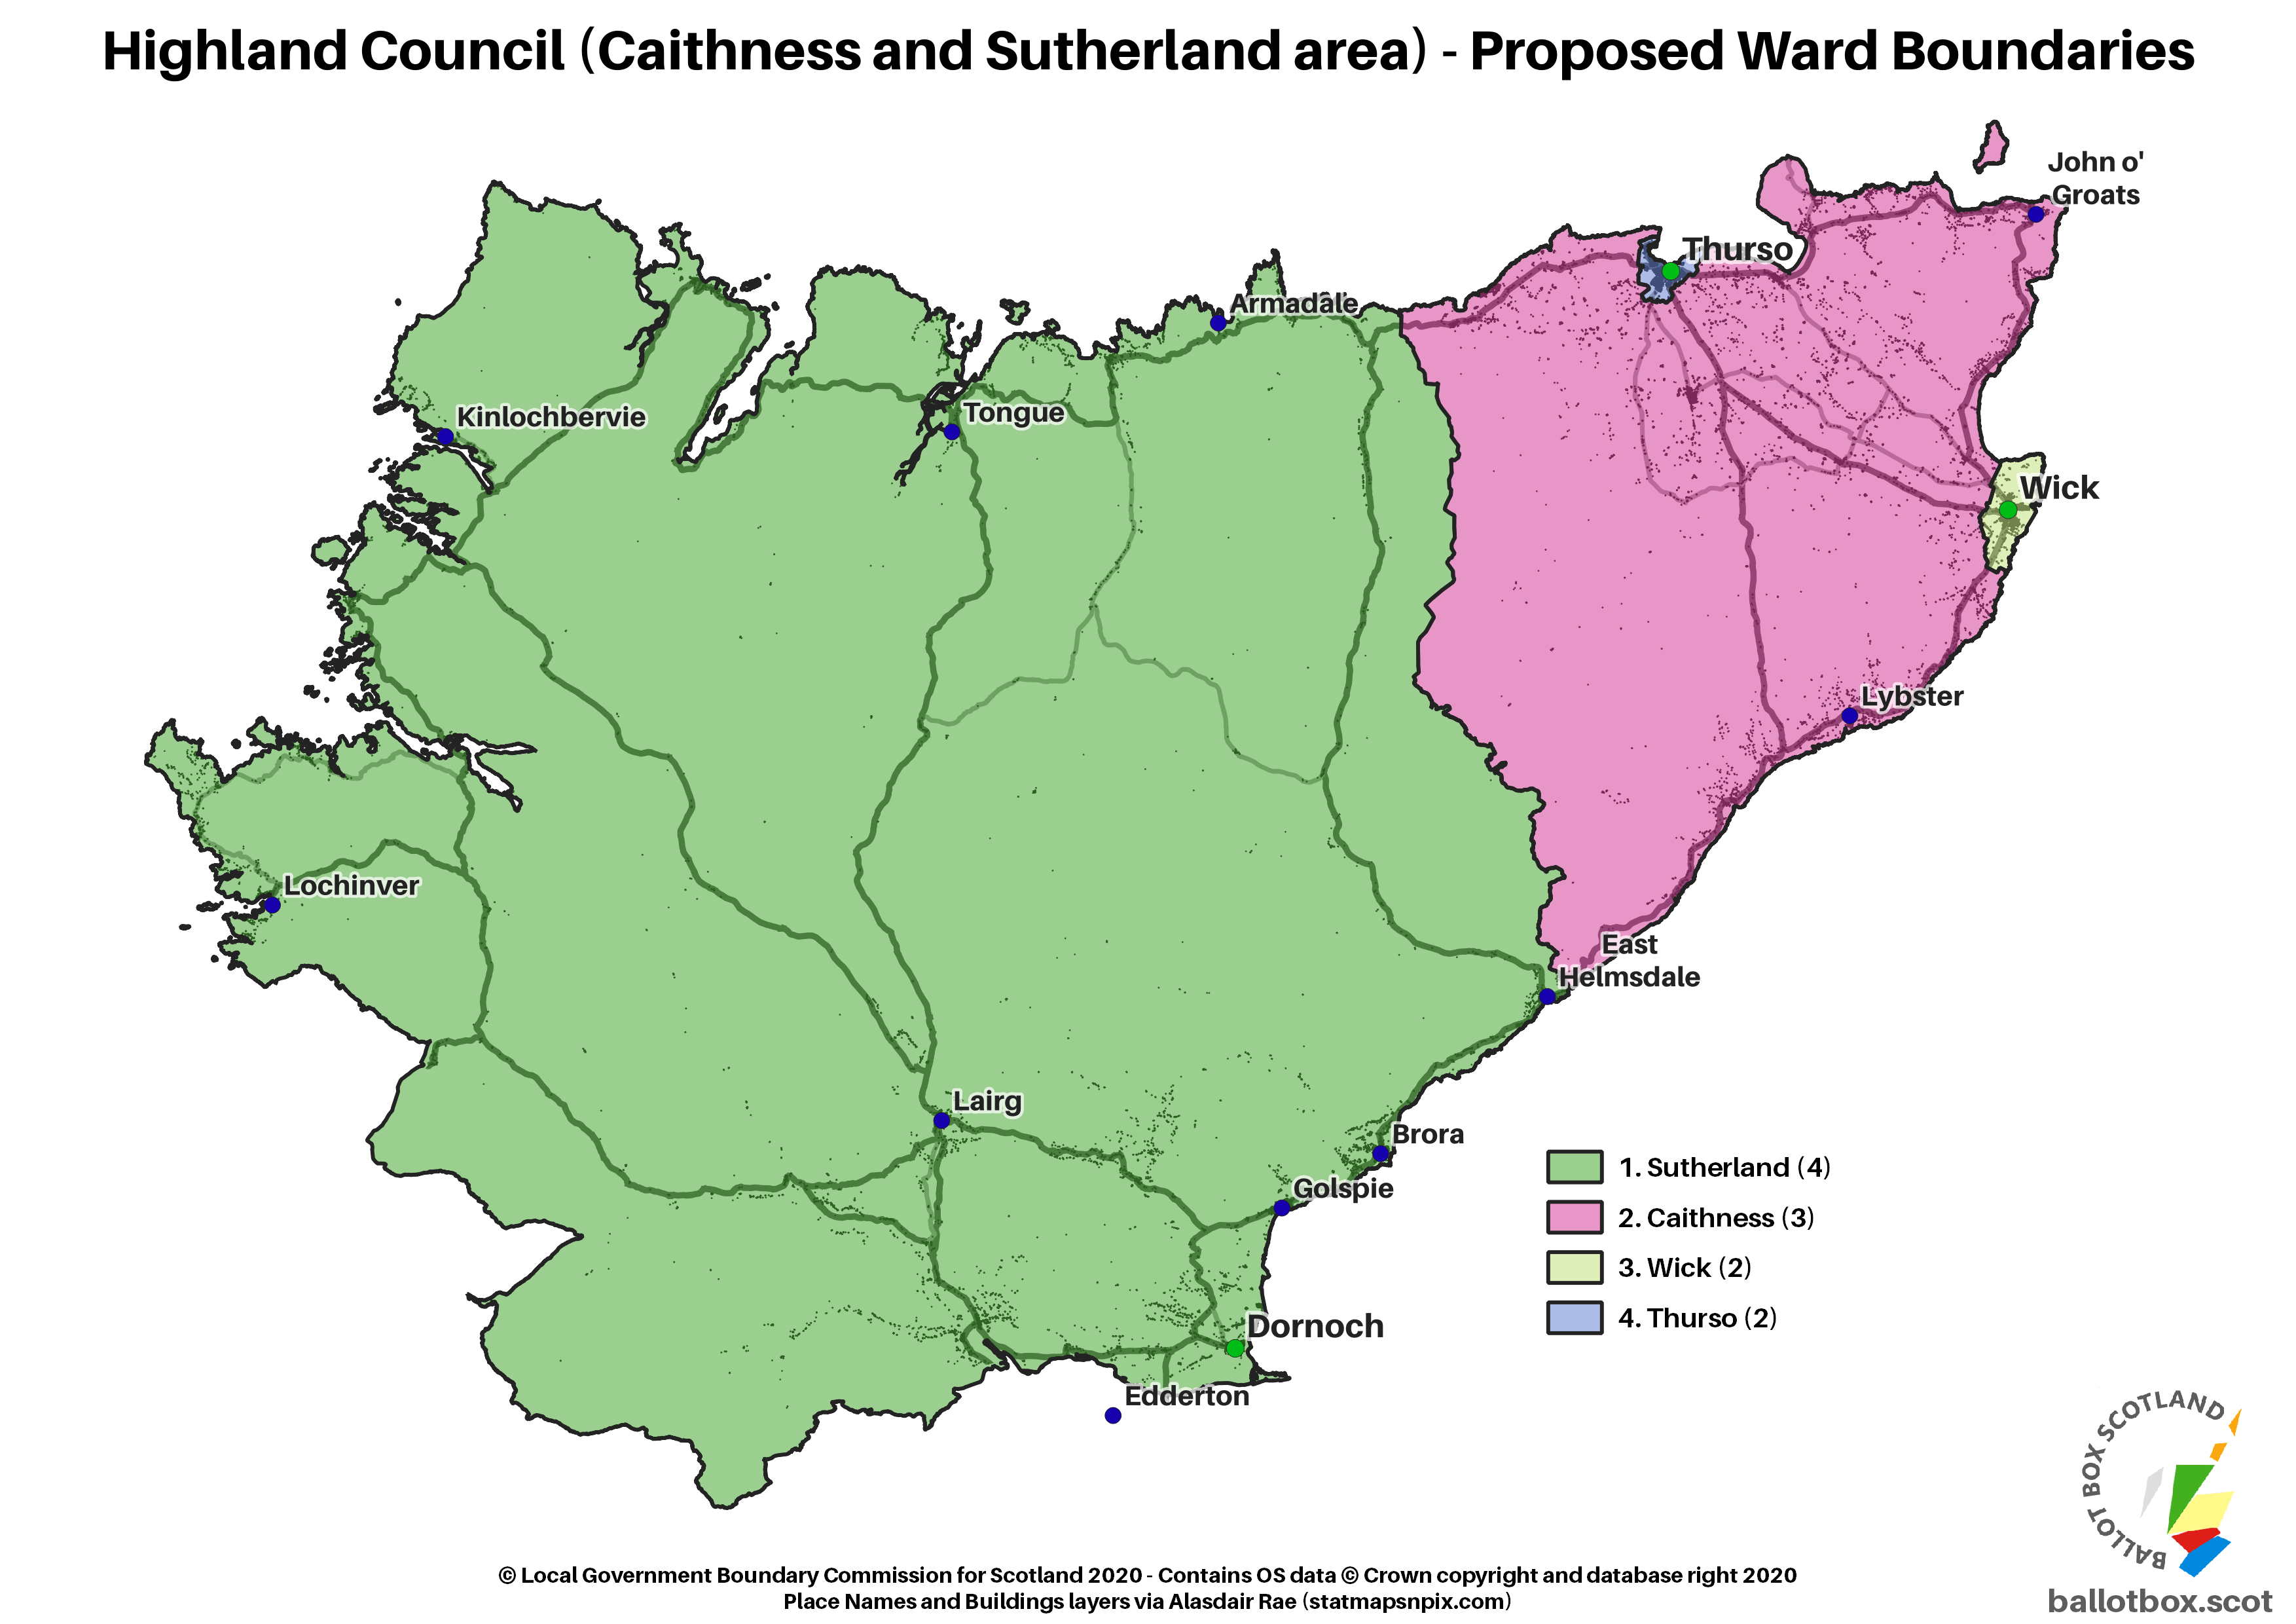 Caithness and Sutherland Proposed